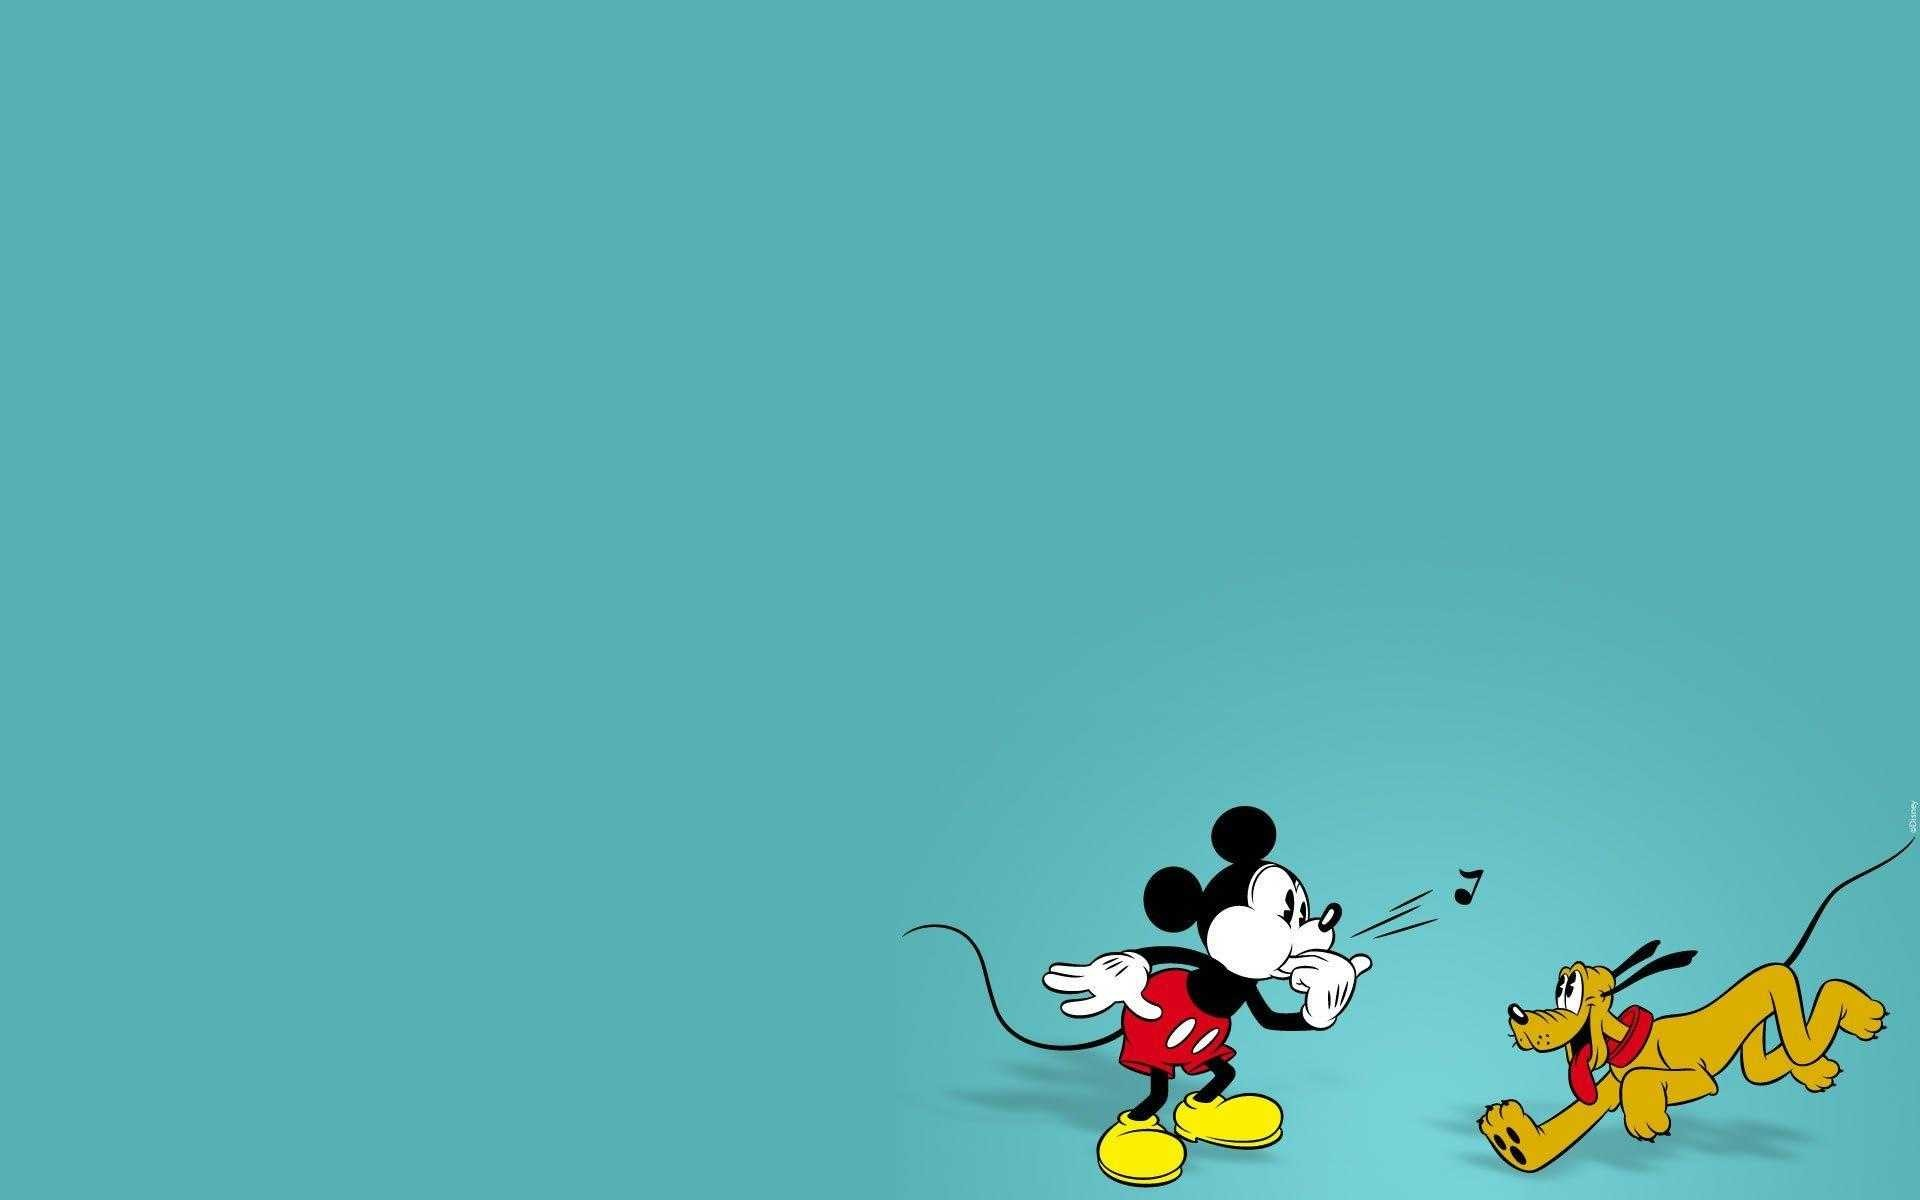 1920x1200 Mickey Mouse Backgrounds Wallpaper Full Hd For Laptop Images